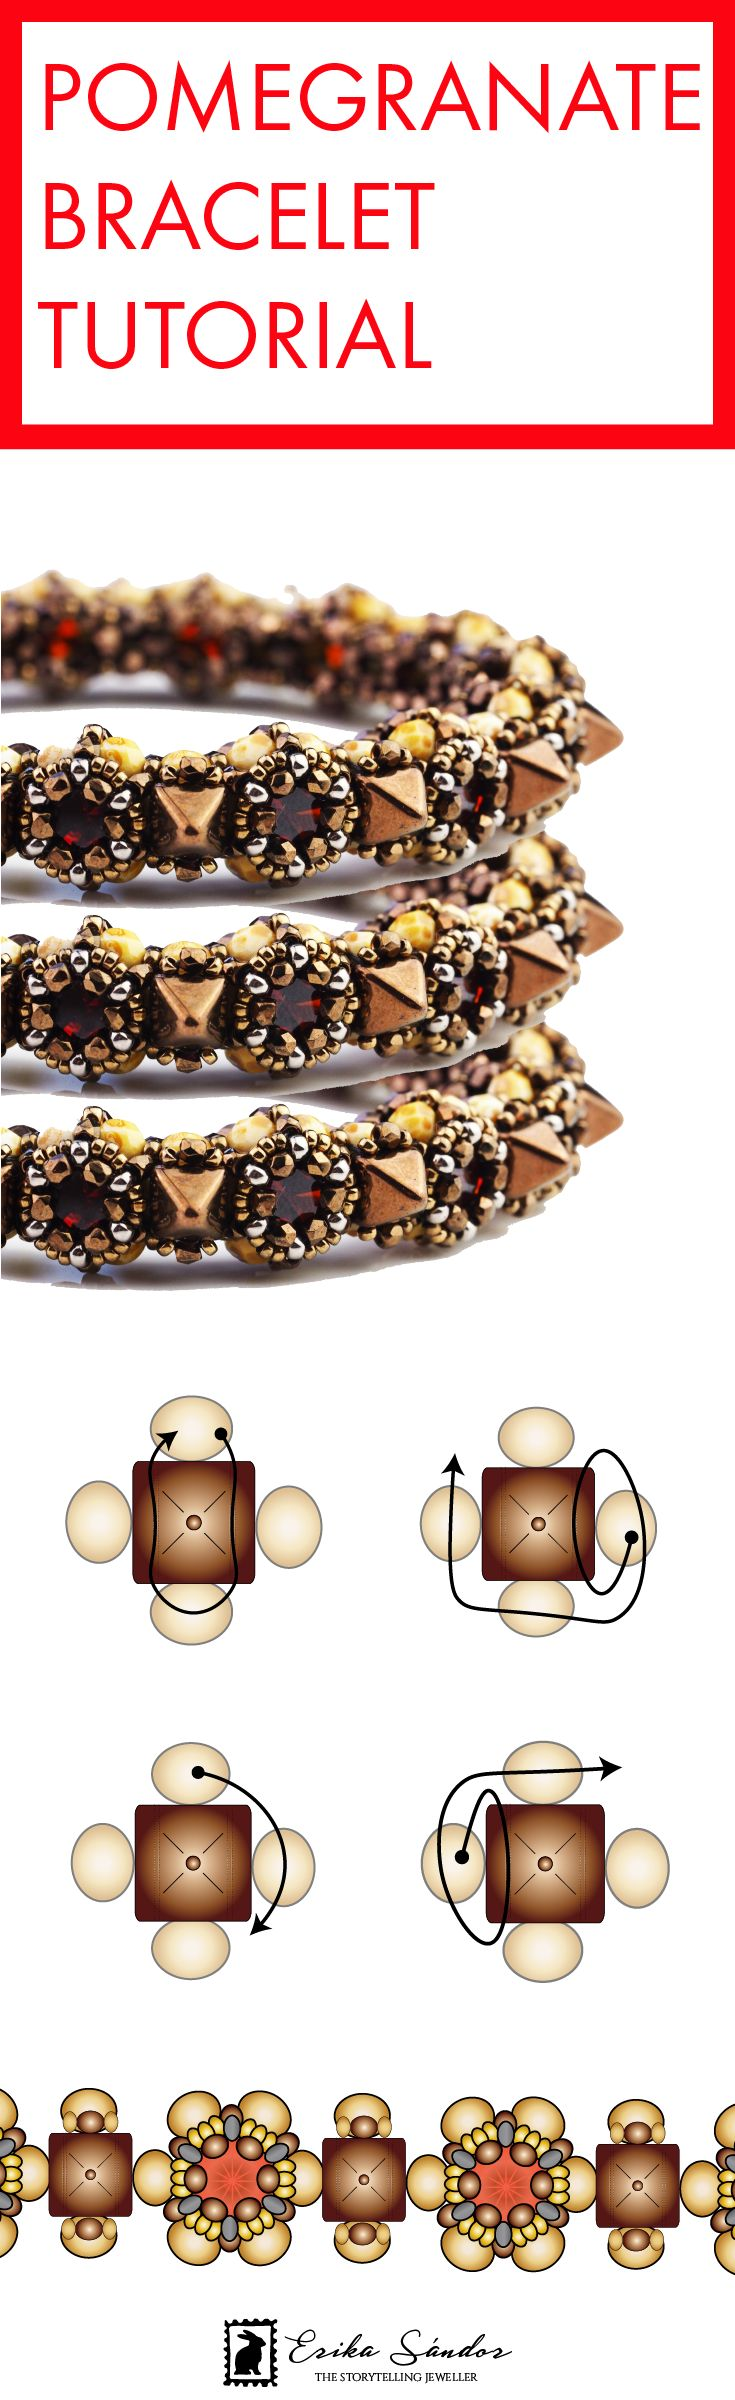 Beaded bracelet tutorial with Spike Pyramid beads, cabochons, Miyuki seed beads, fire polished beads, True 2 by Beadsmith beads. Design by Erika Sandor the Storytelling Jeweller.